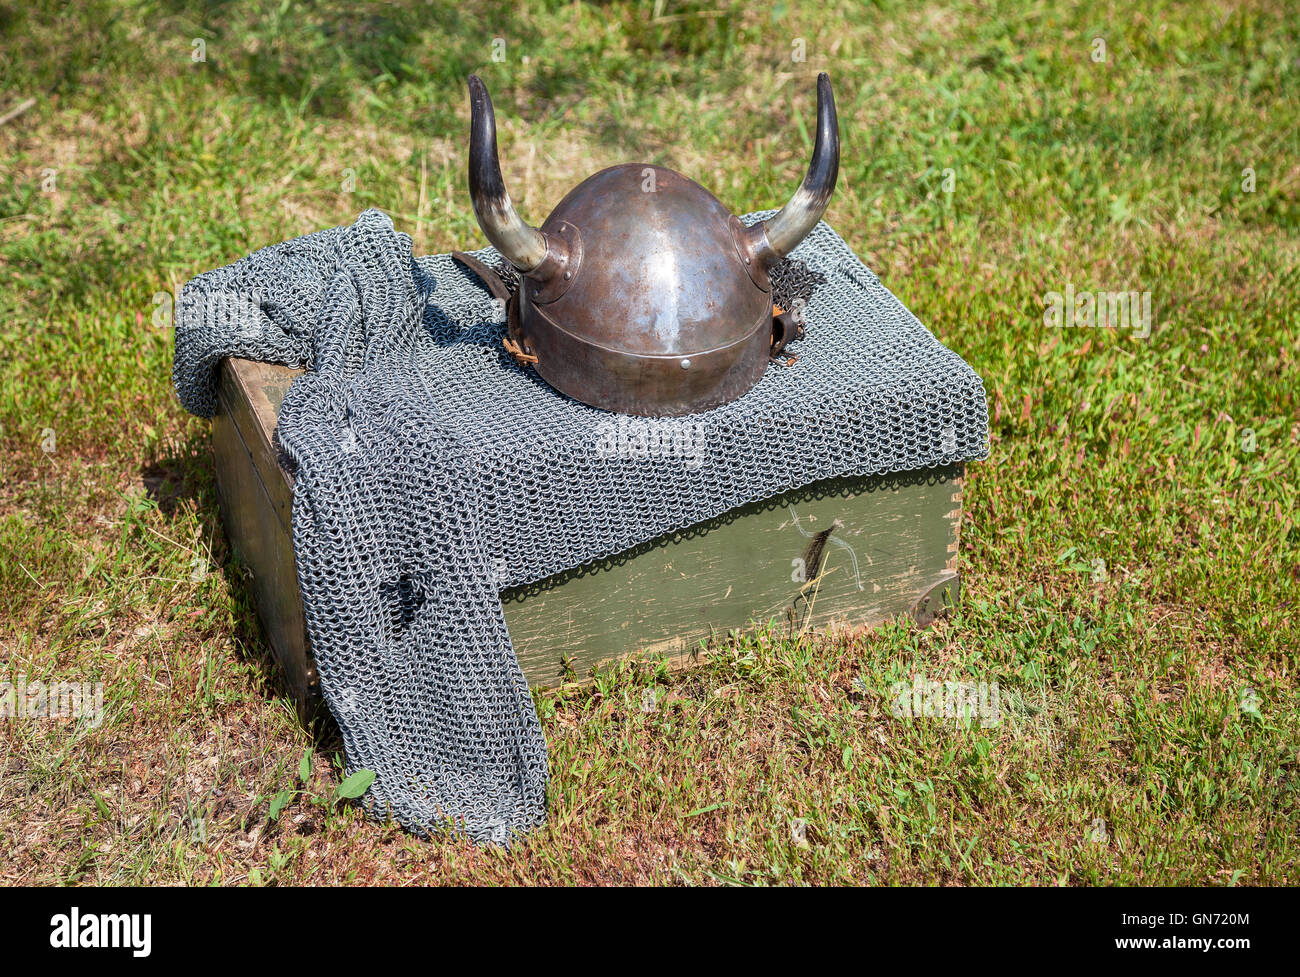 Medieval knight armor with helmet and chain mail - Stock Image